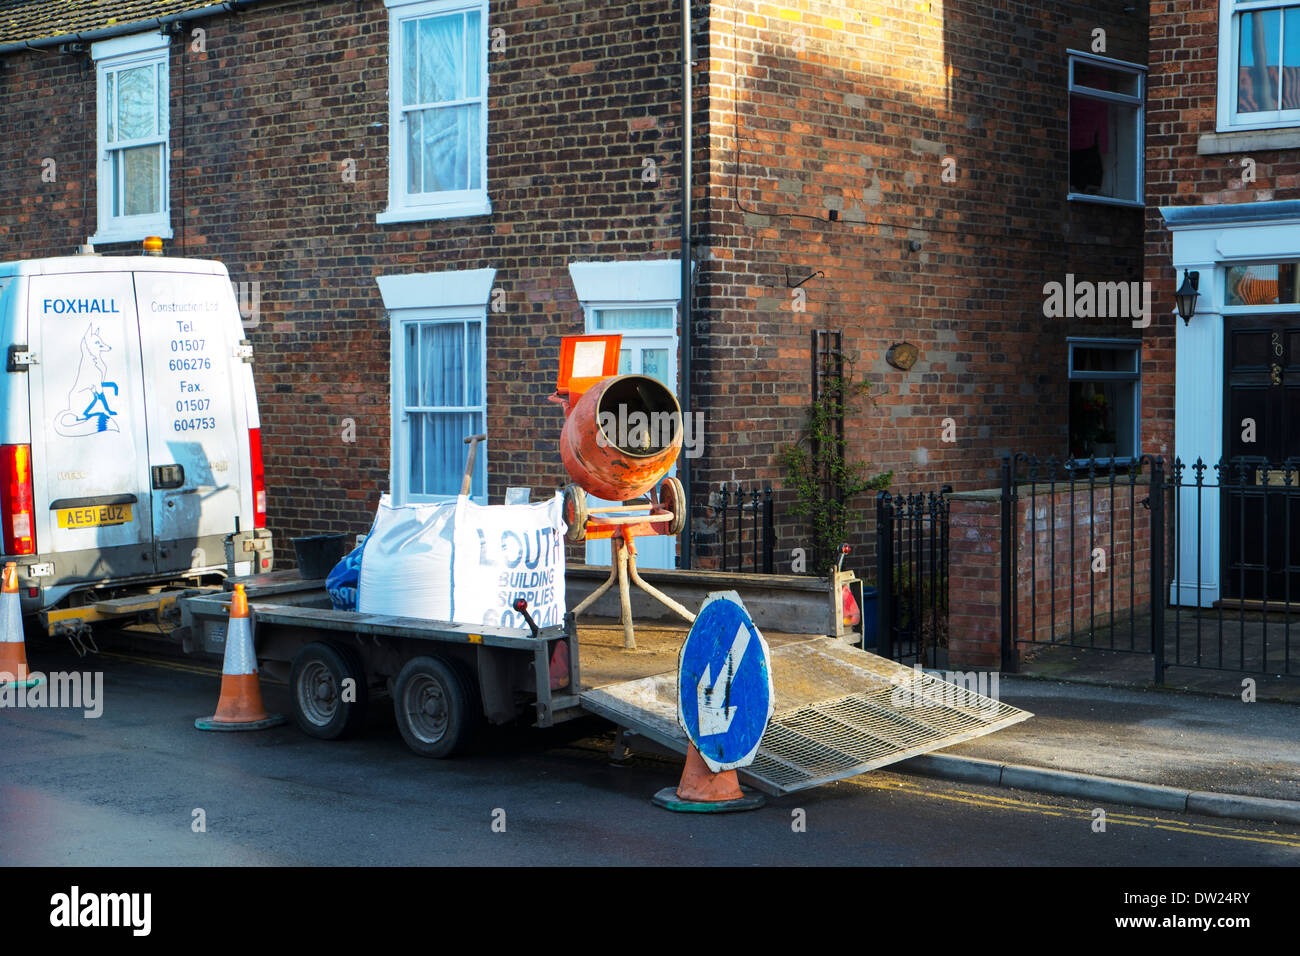 Cement mixer and sand on trailer builders machinery tools machine - Stock Image